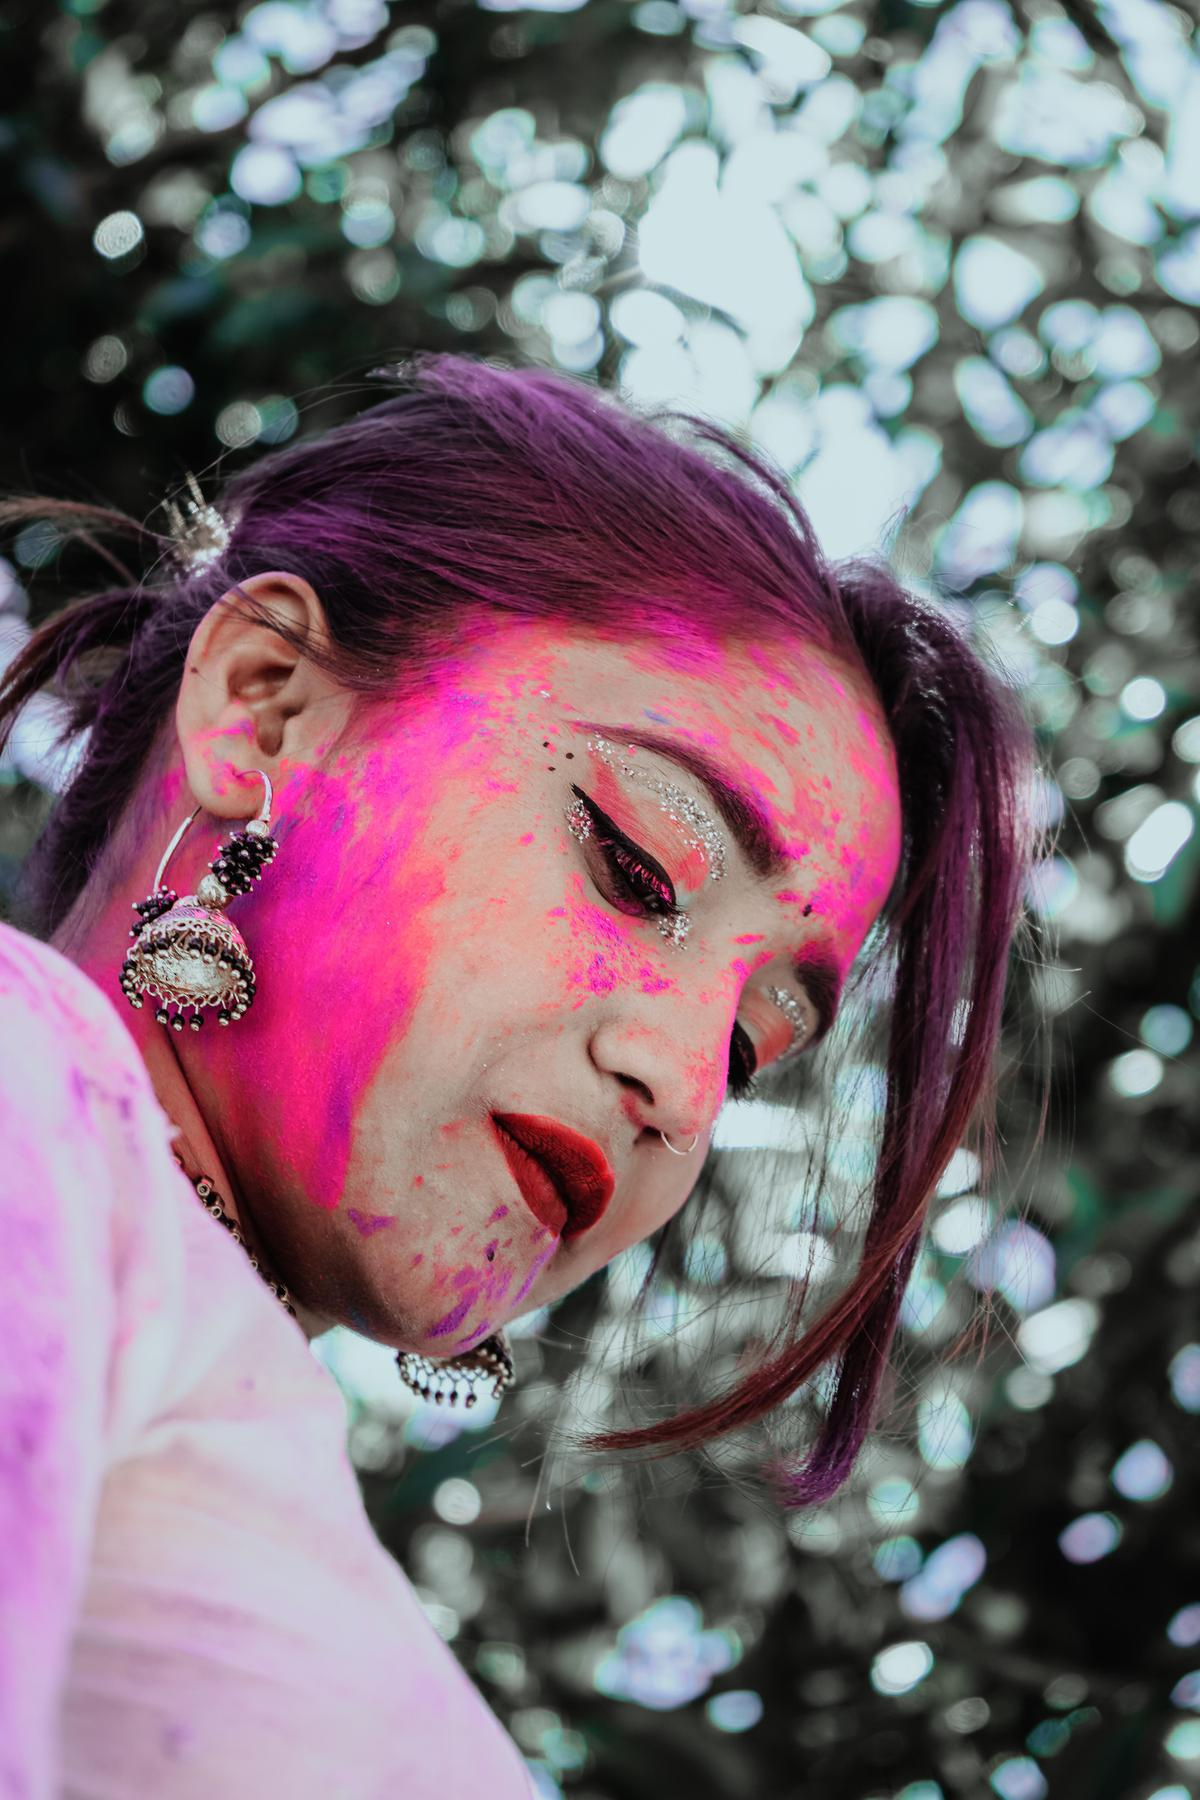 Image of Hair, Pink, Green, Purple, Red, Beauty etc.